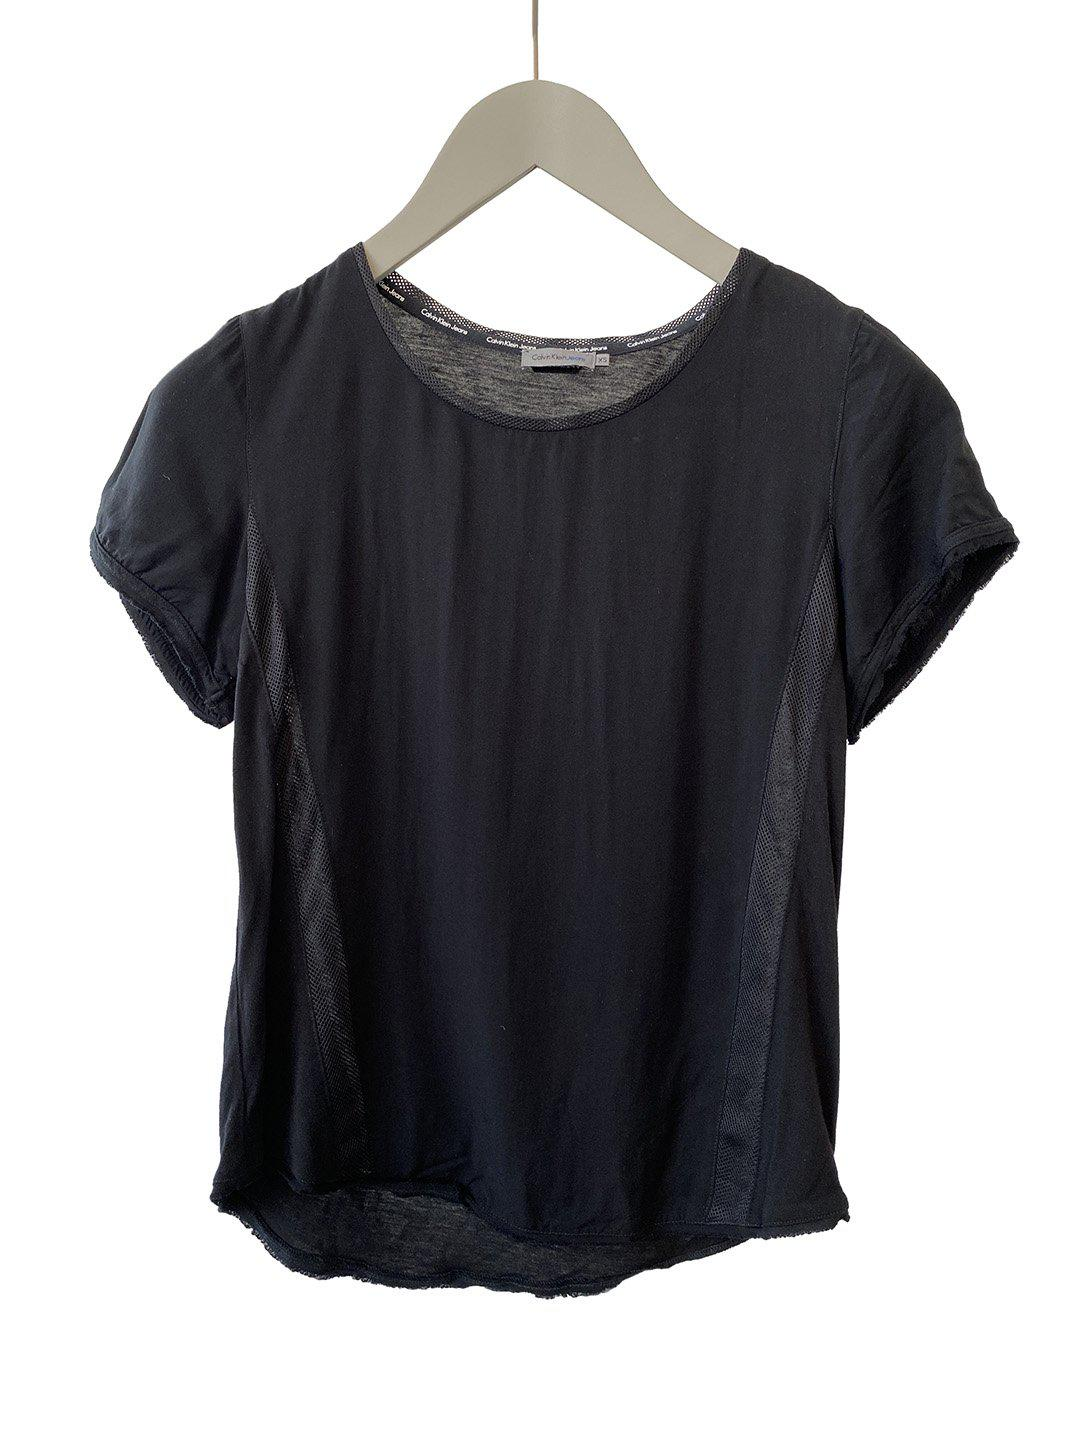 Sort Sports T-Shirt fra Calvin Klein Jeans